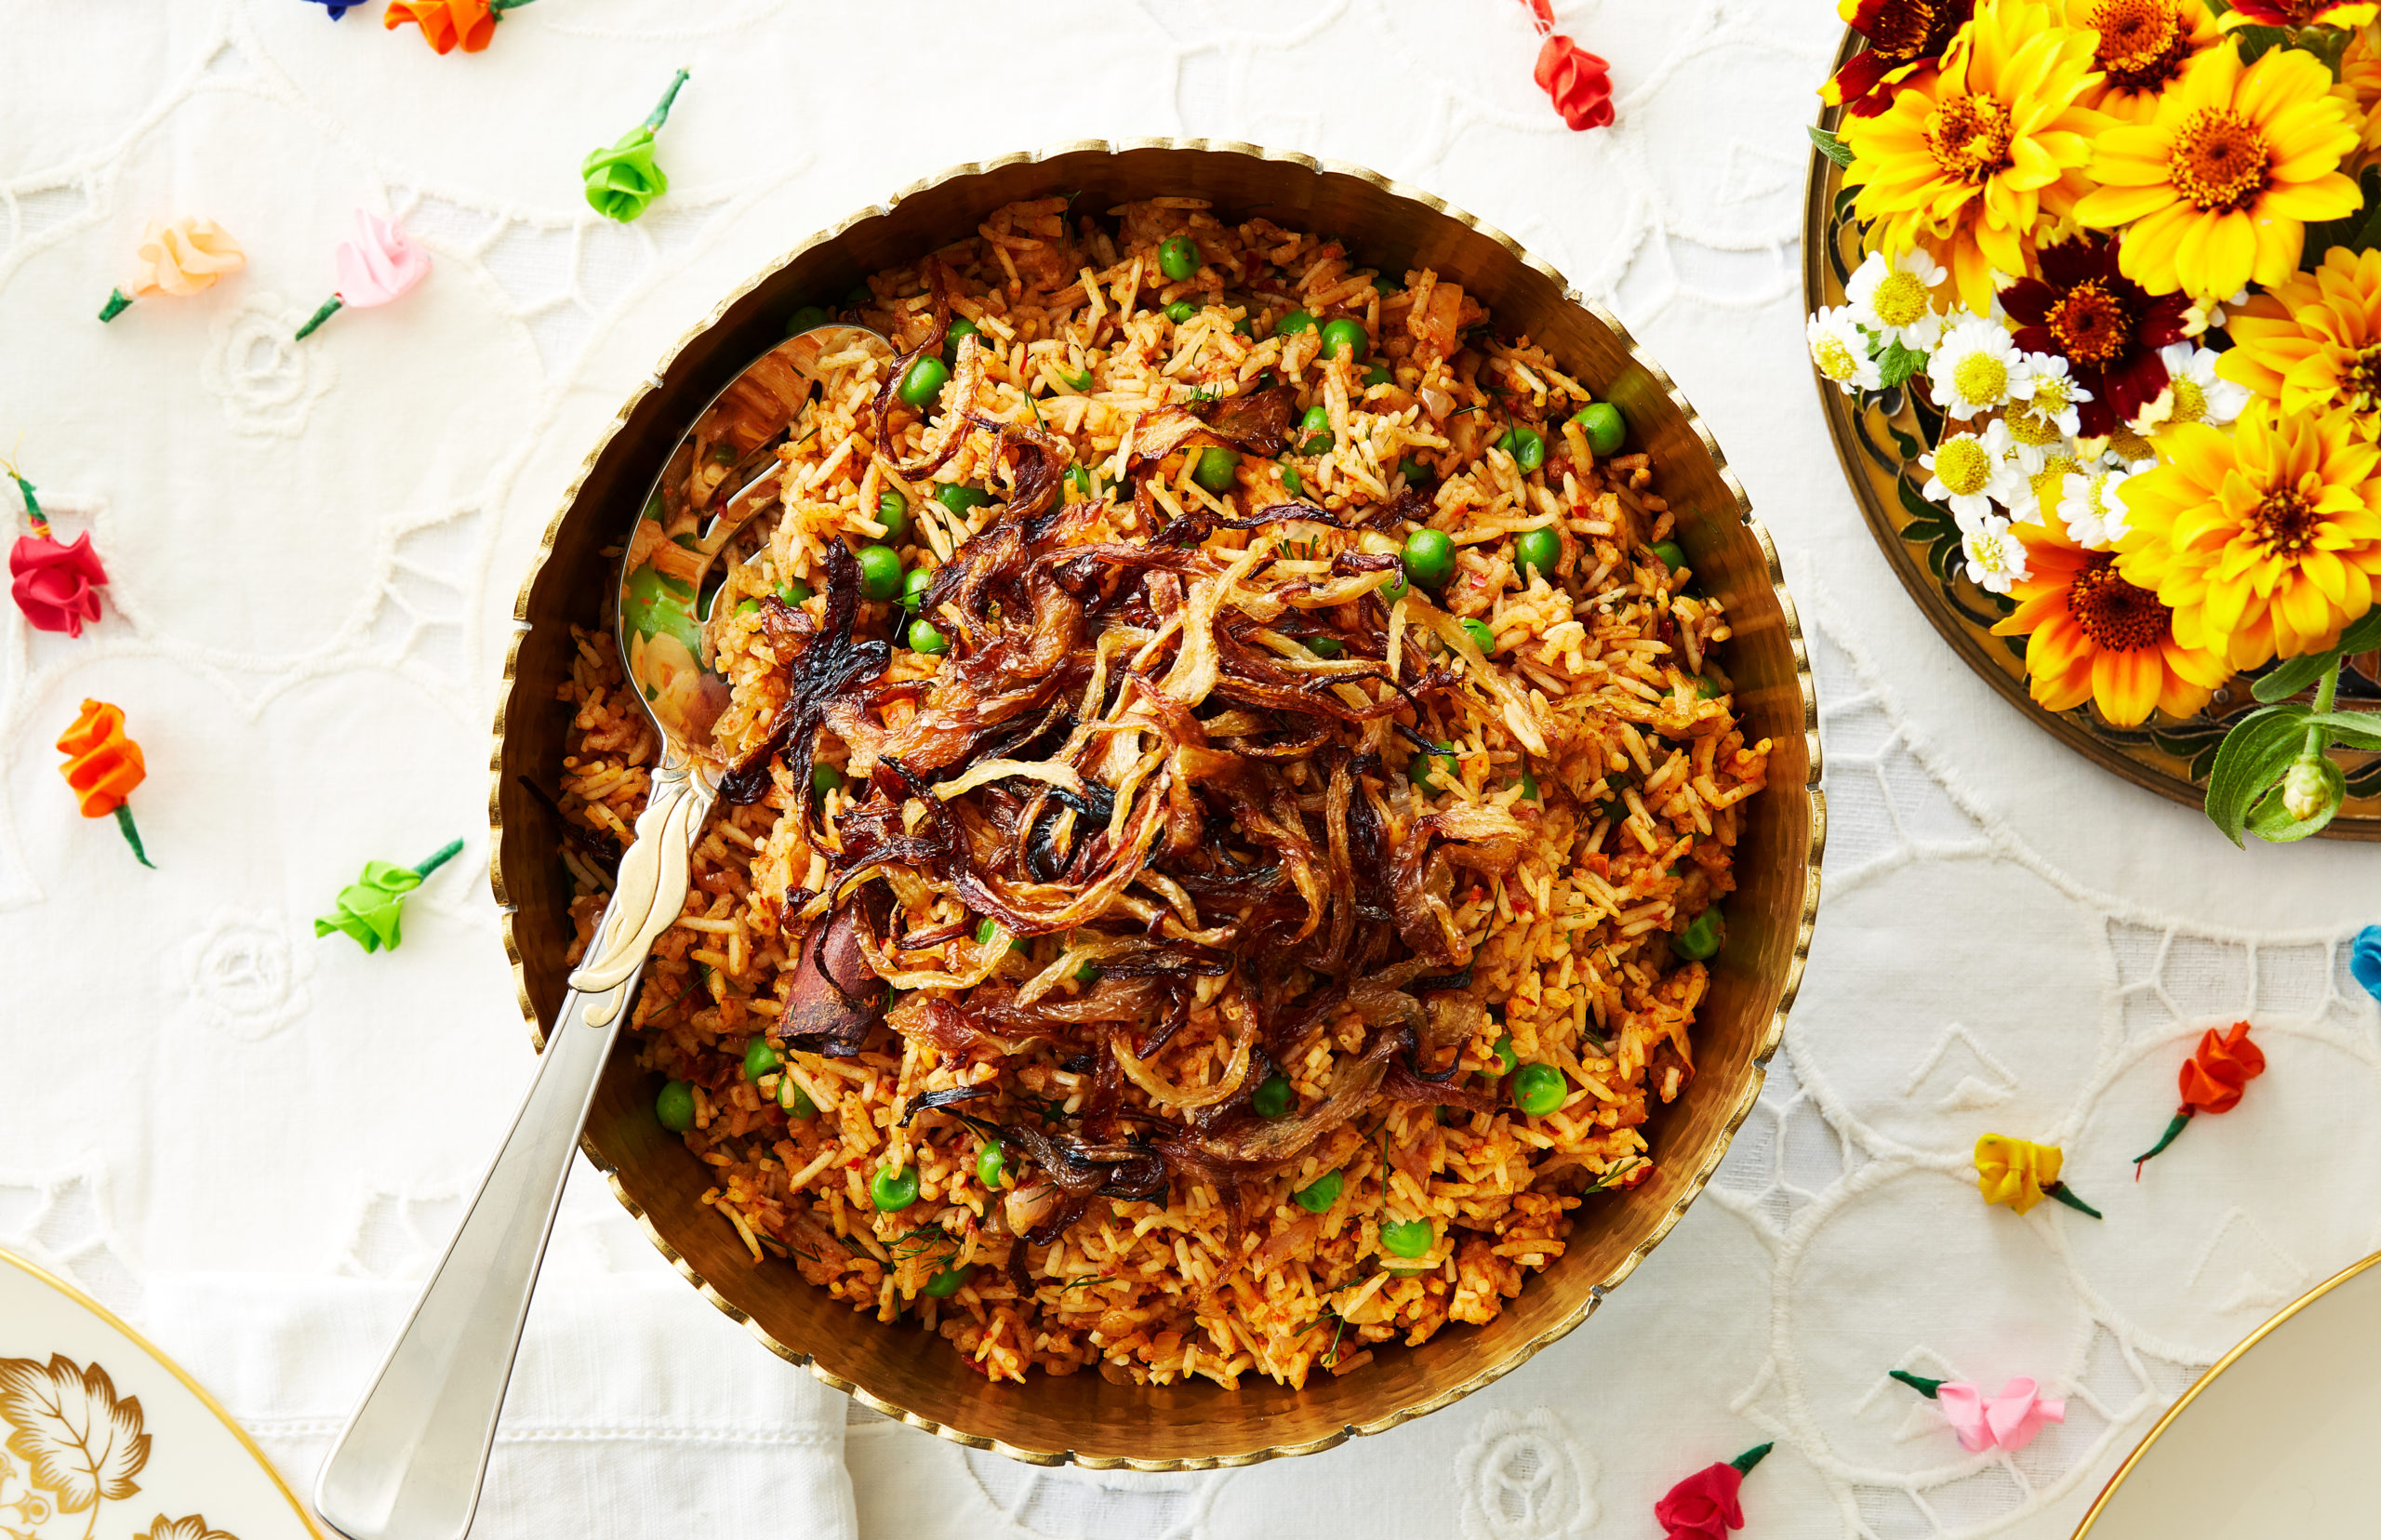 Rice pilaf with tomatoes, peas, and onions from the Baghdadi Jewish community of India